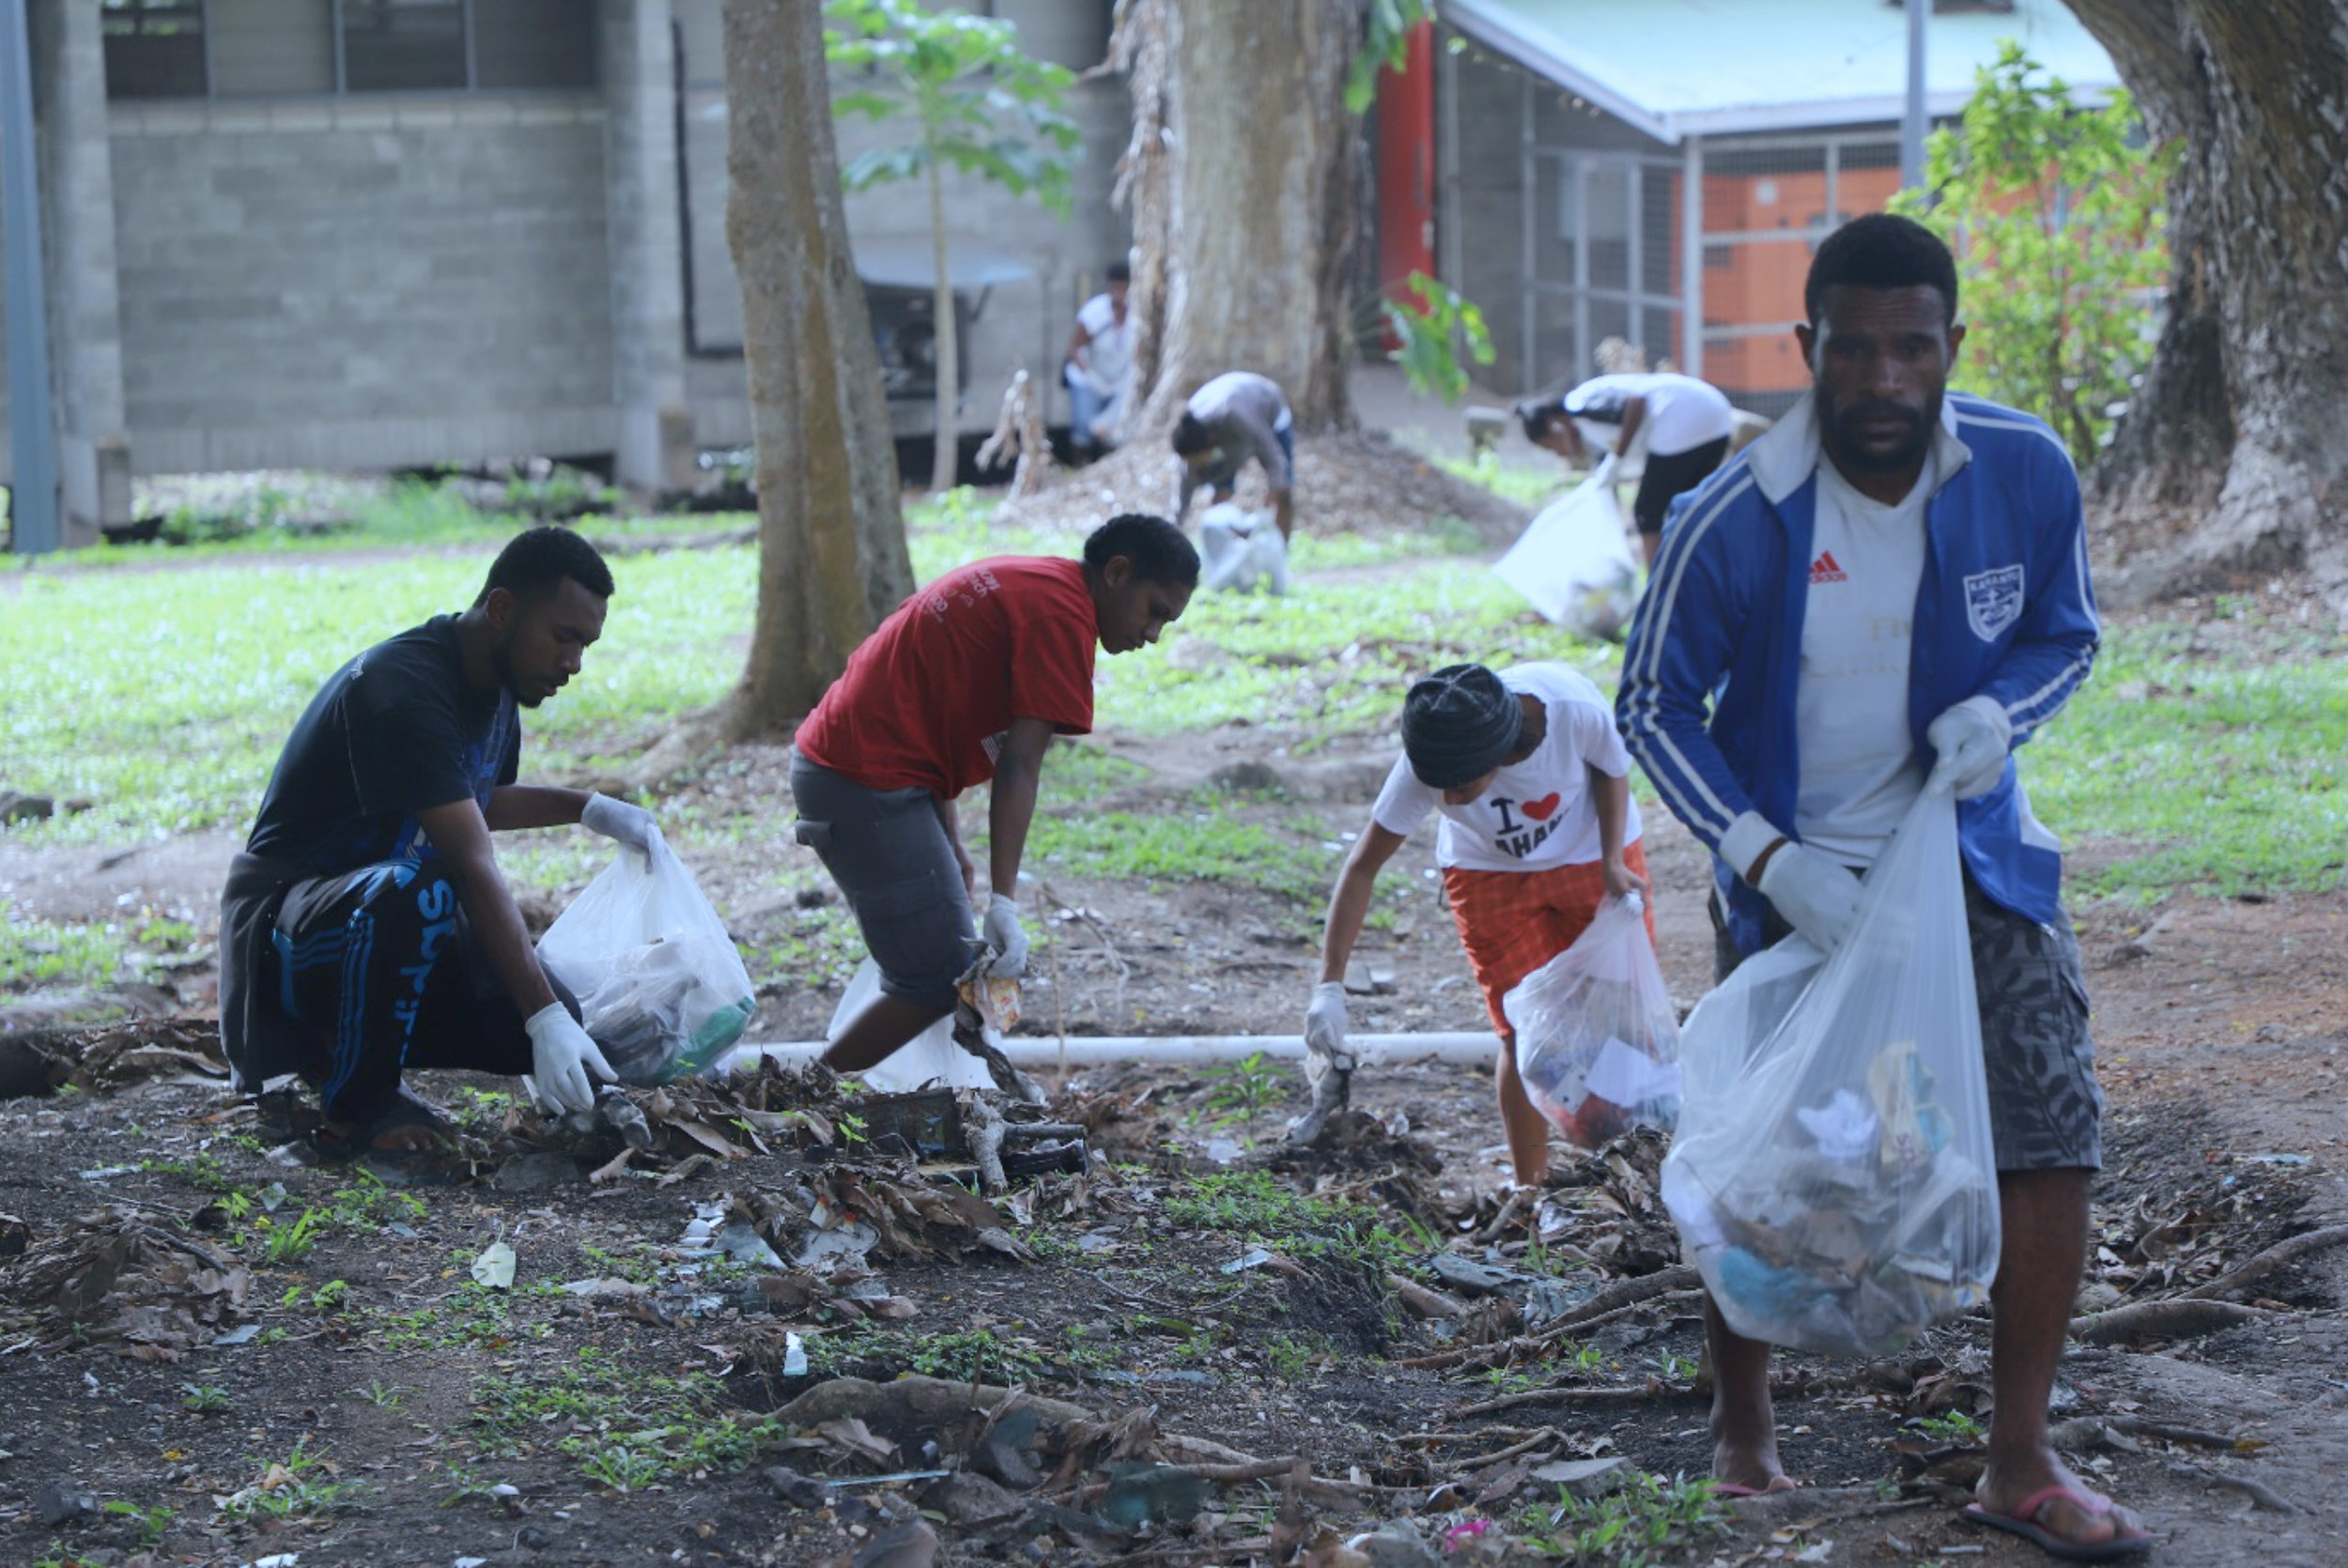 ENVIRONMENT MEETS LEADERSHIP: HEALTH STUDENTS DRIVE CLEAN-A-THON AT UPNG TAURAMA CAMPUS. As part of their leadership assignment, the 10 Oil Search Foundation Scholarship recipients led the clean-up drive, galvanizing their fellow students into filling up 164 bags of miscellaneous rubbish. They then handed wheelie bins to be put in the dorms, and stressed cleanliness and hygiene awareness as part of the training of future health practitioners.